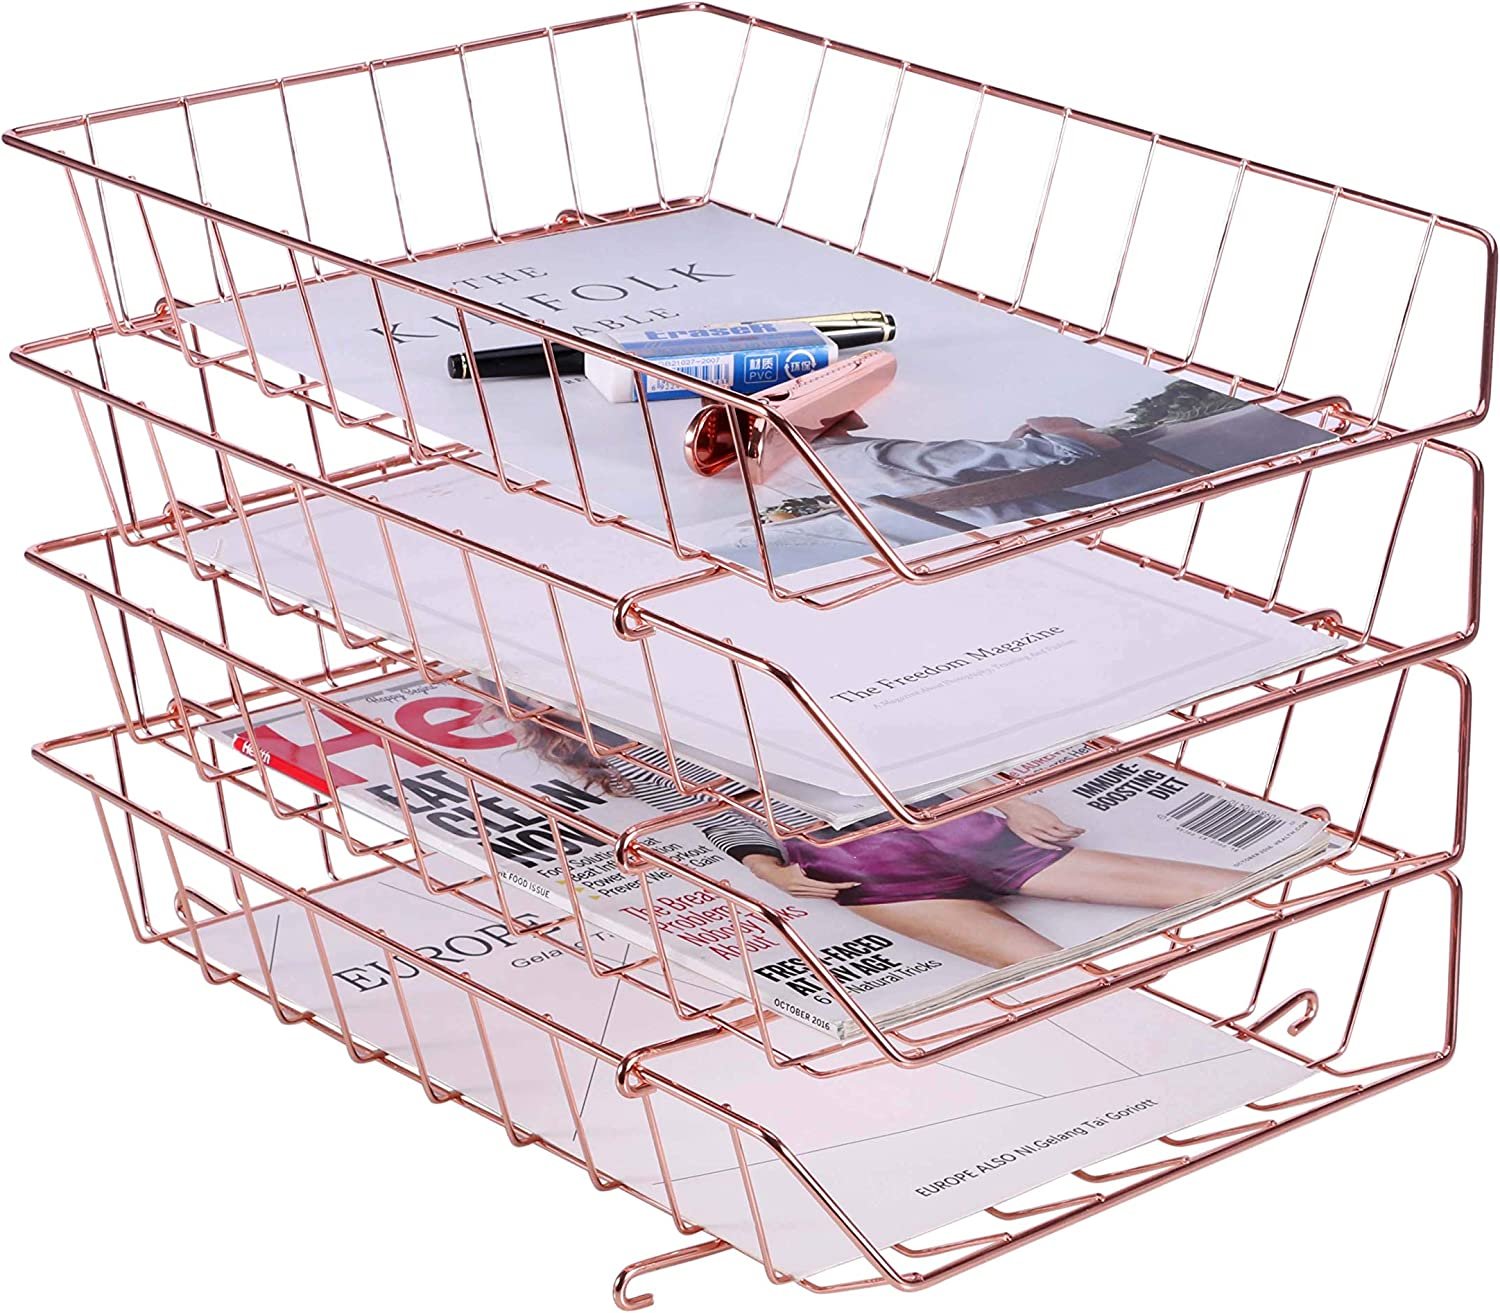 Z PLINRISE Stackable Letter Tray, 4-Tier Desk File Organizer for Mails, Magazines, Documents and Accessories, Wire Paper Tray for Home, School and Office, Rose Gold